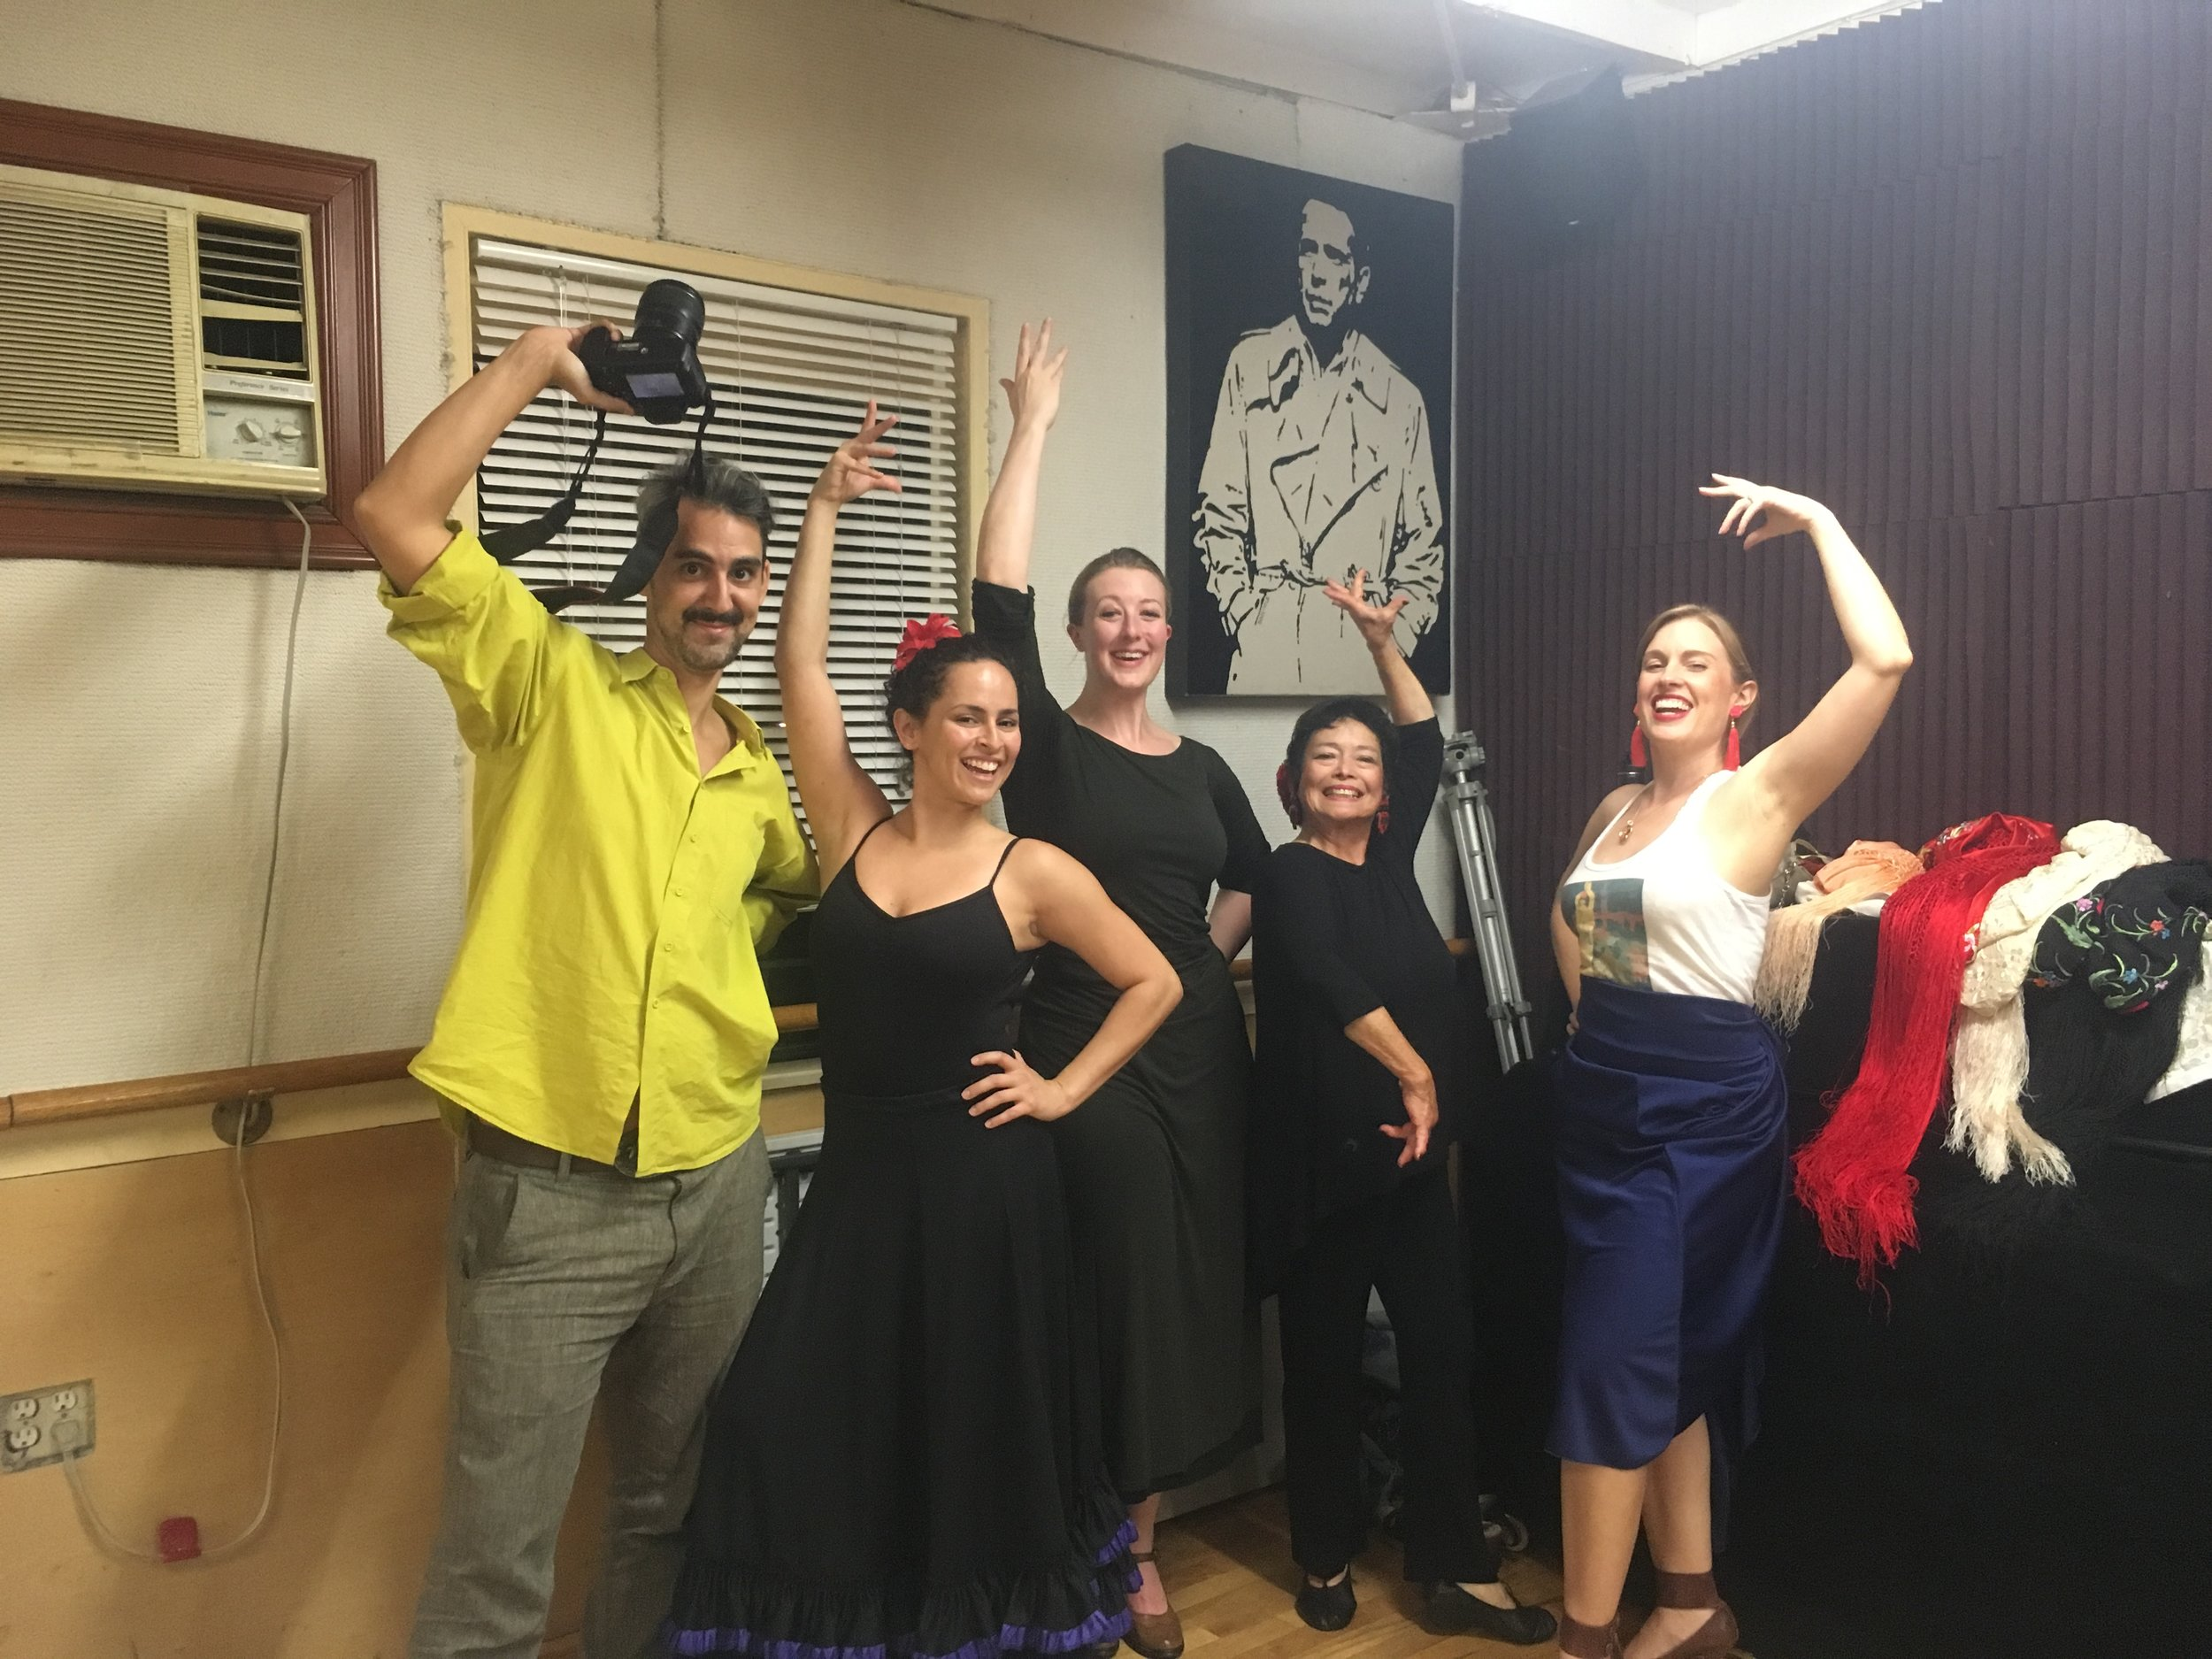 Flamenco class is fun!